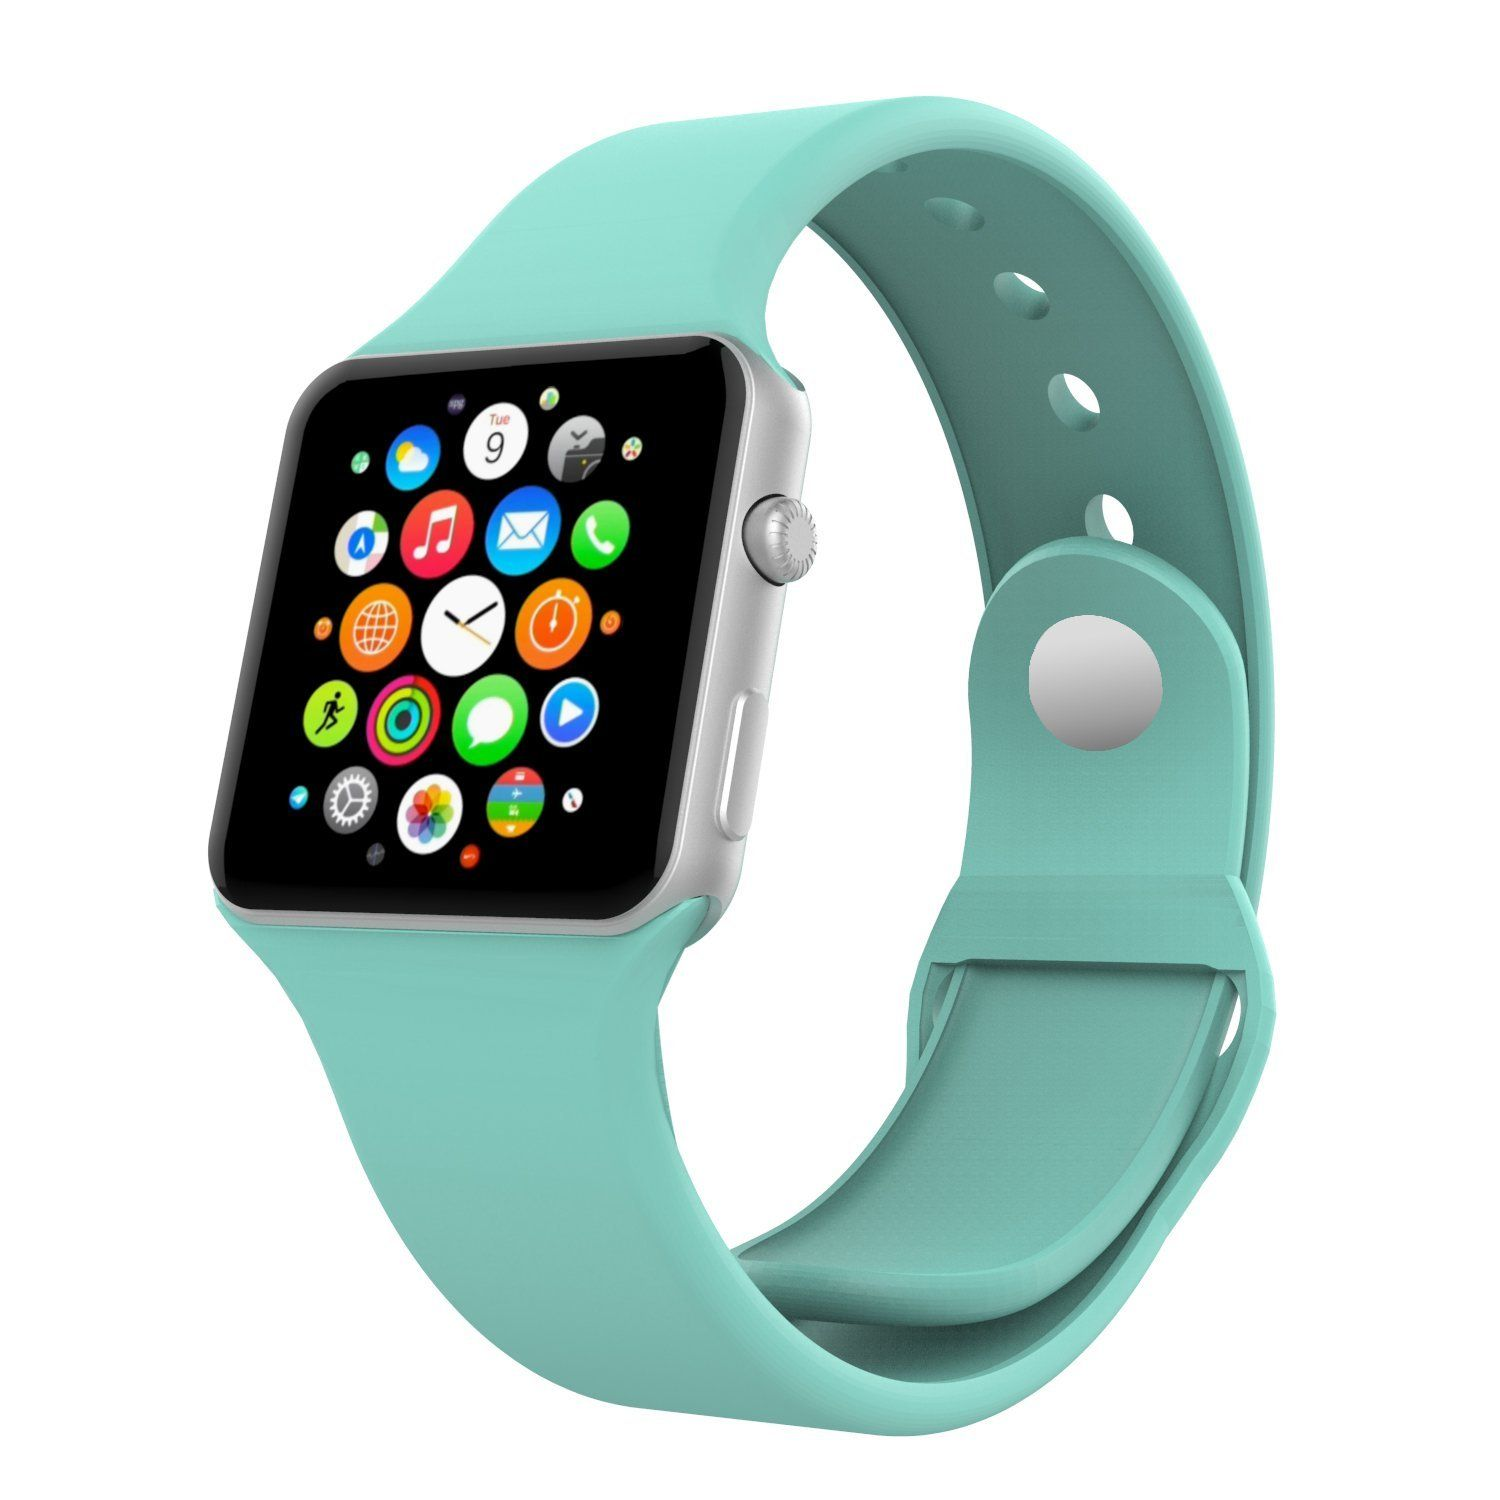 MOKO 38MM MINT GREEN SILICONE SPORT BAND FOR APPLE WATCH